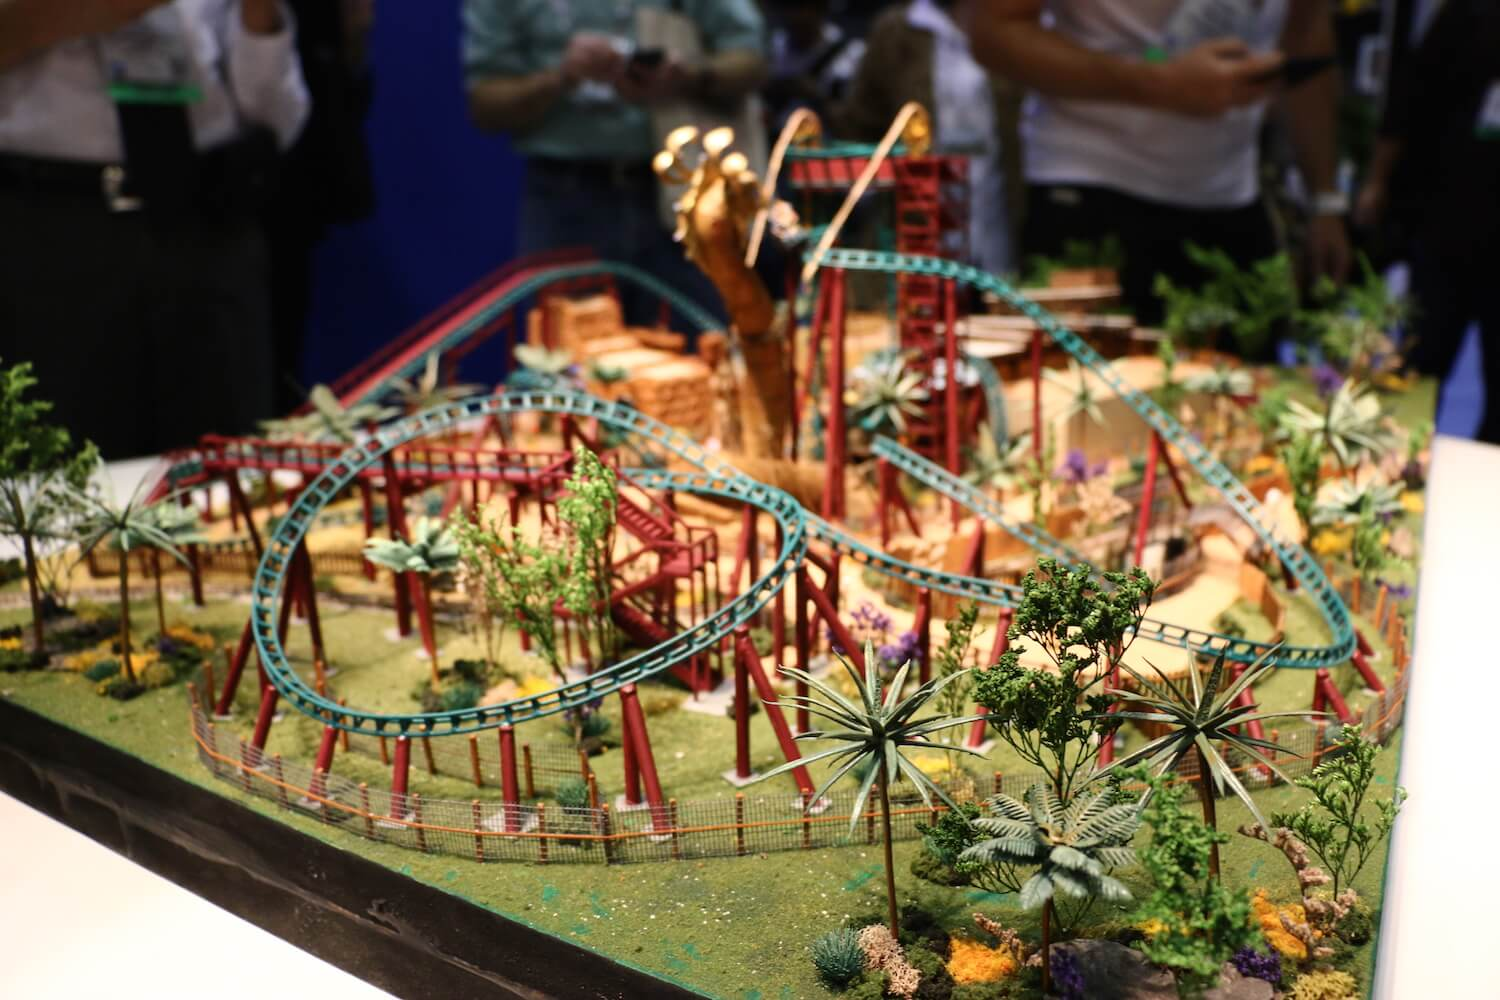 Iaapa 2015 Busch Gardens Tampa Reveals Cobra 39 S Curse Roller Coaster Track Model And New